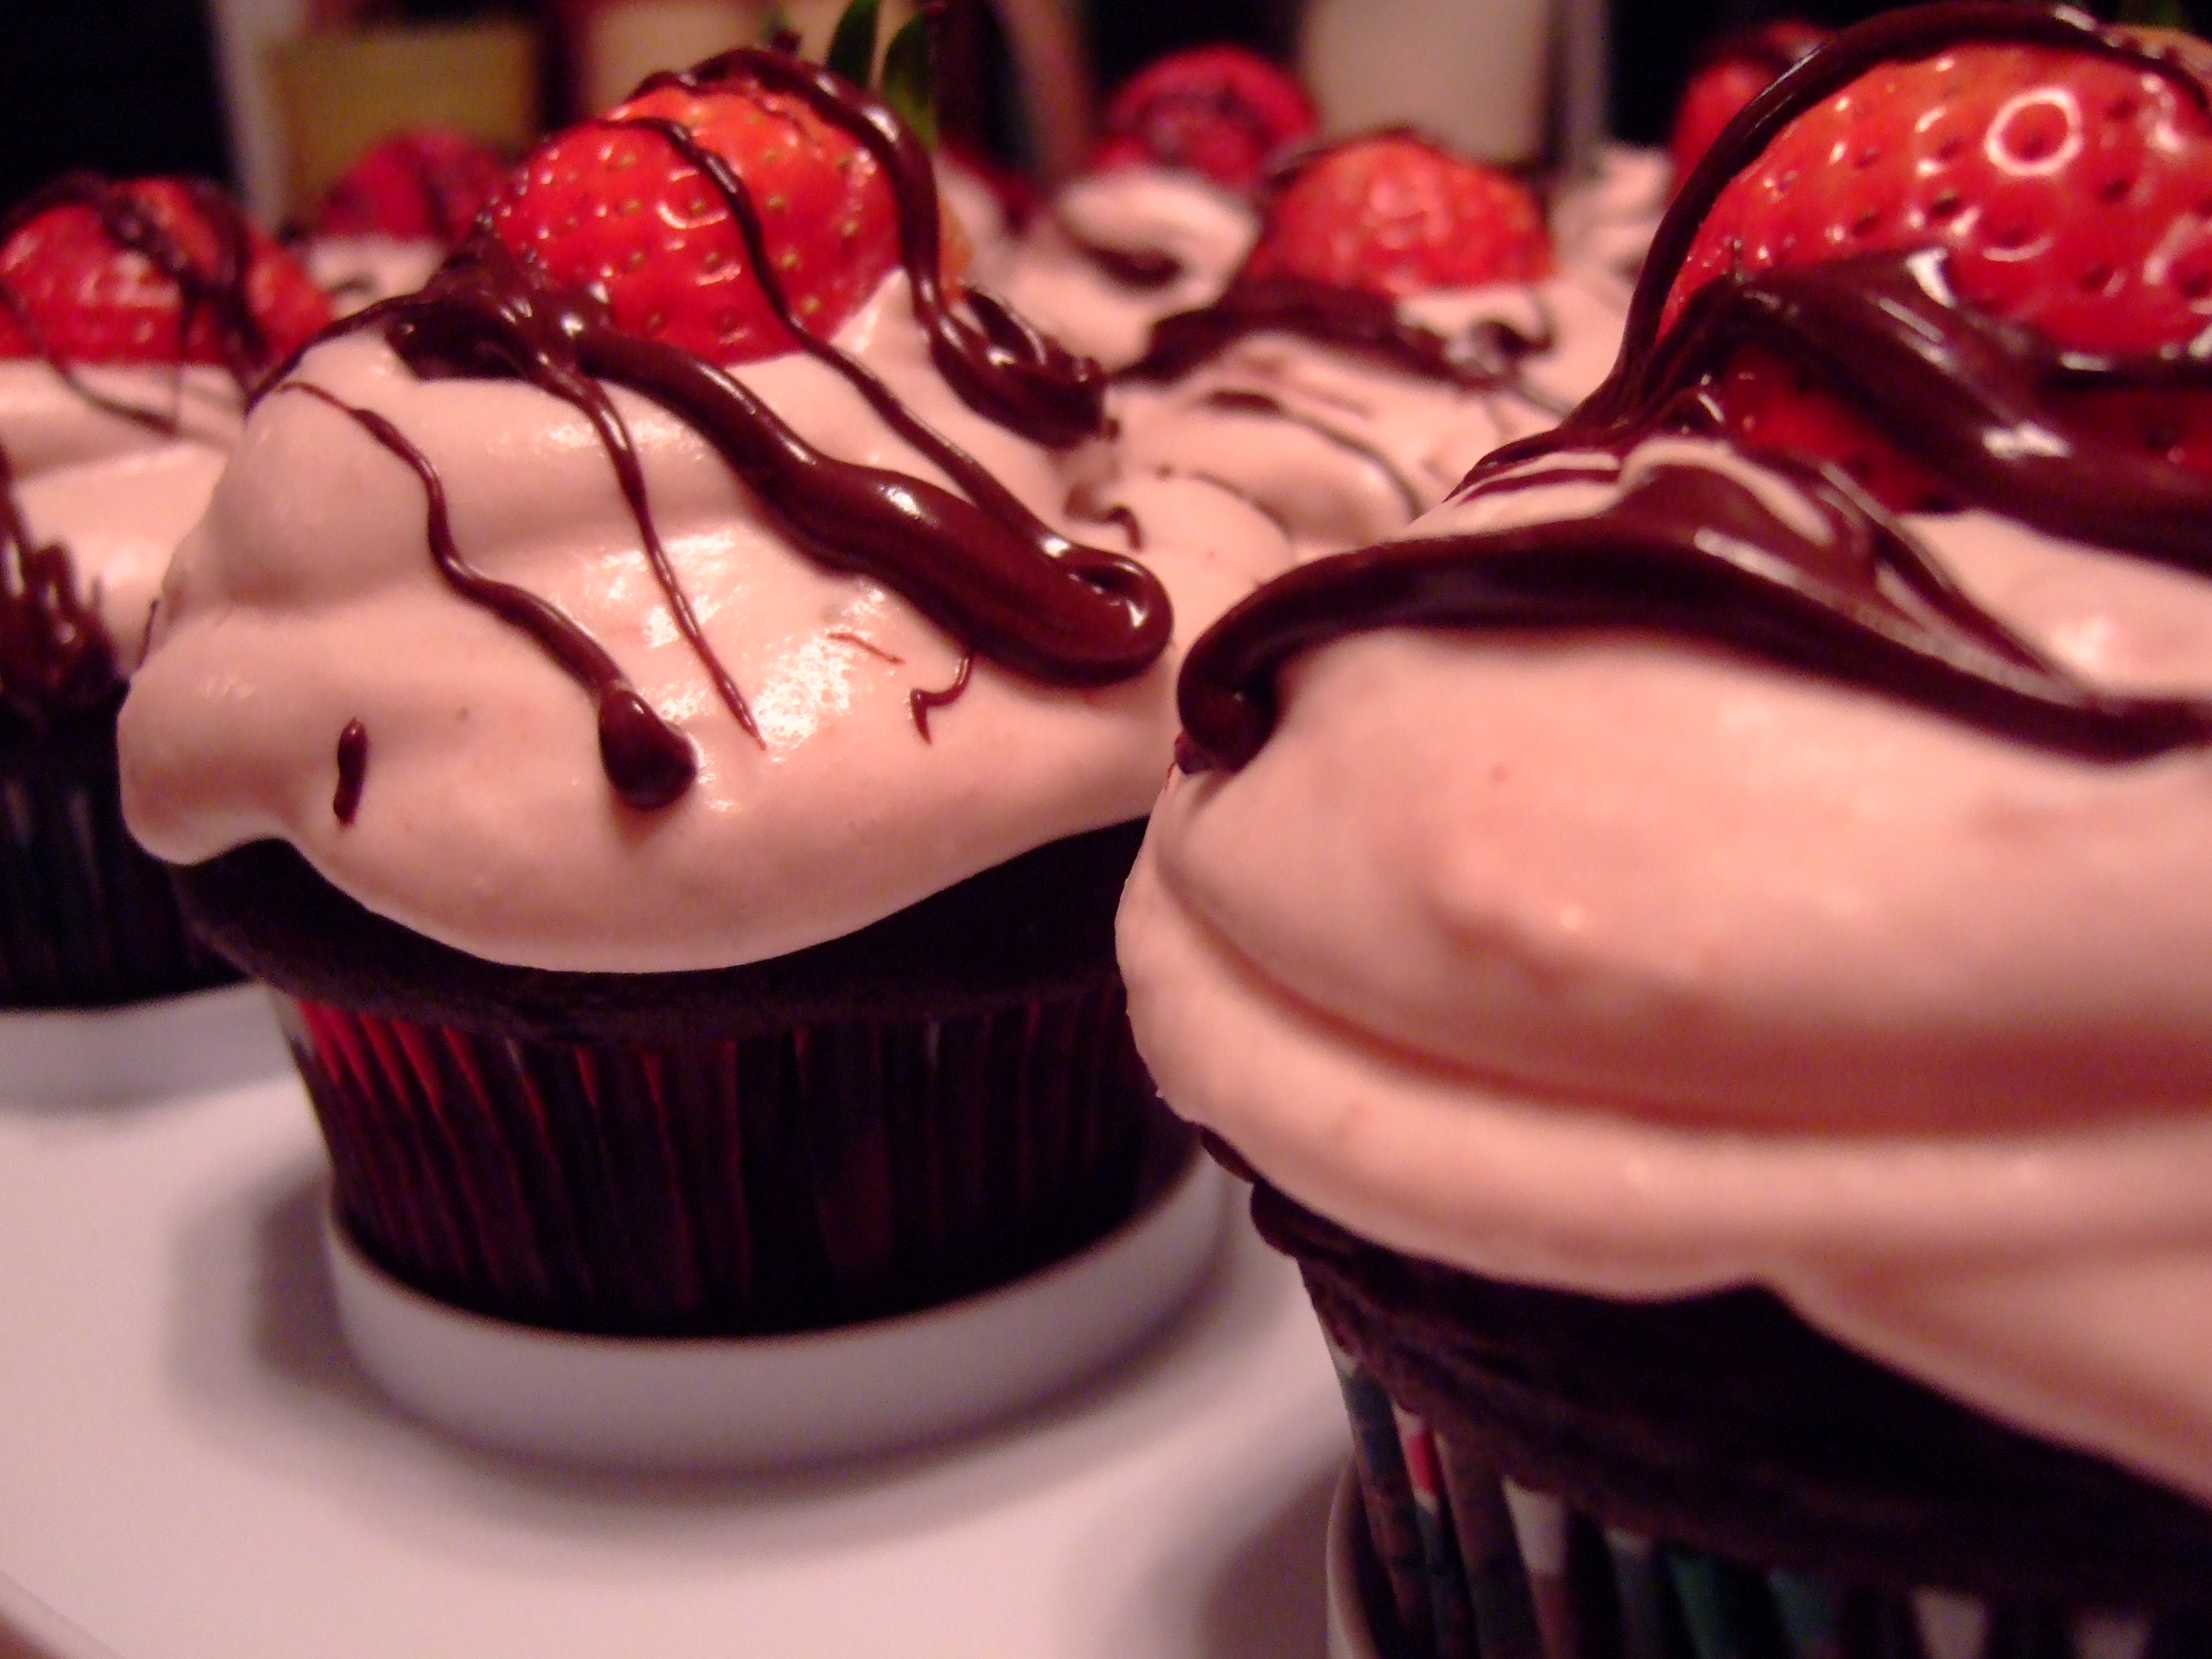 chocolate-covered-strawberry-cupcakes-014